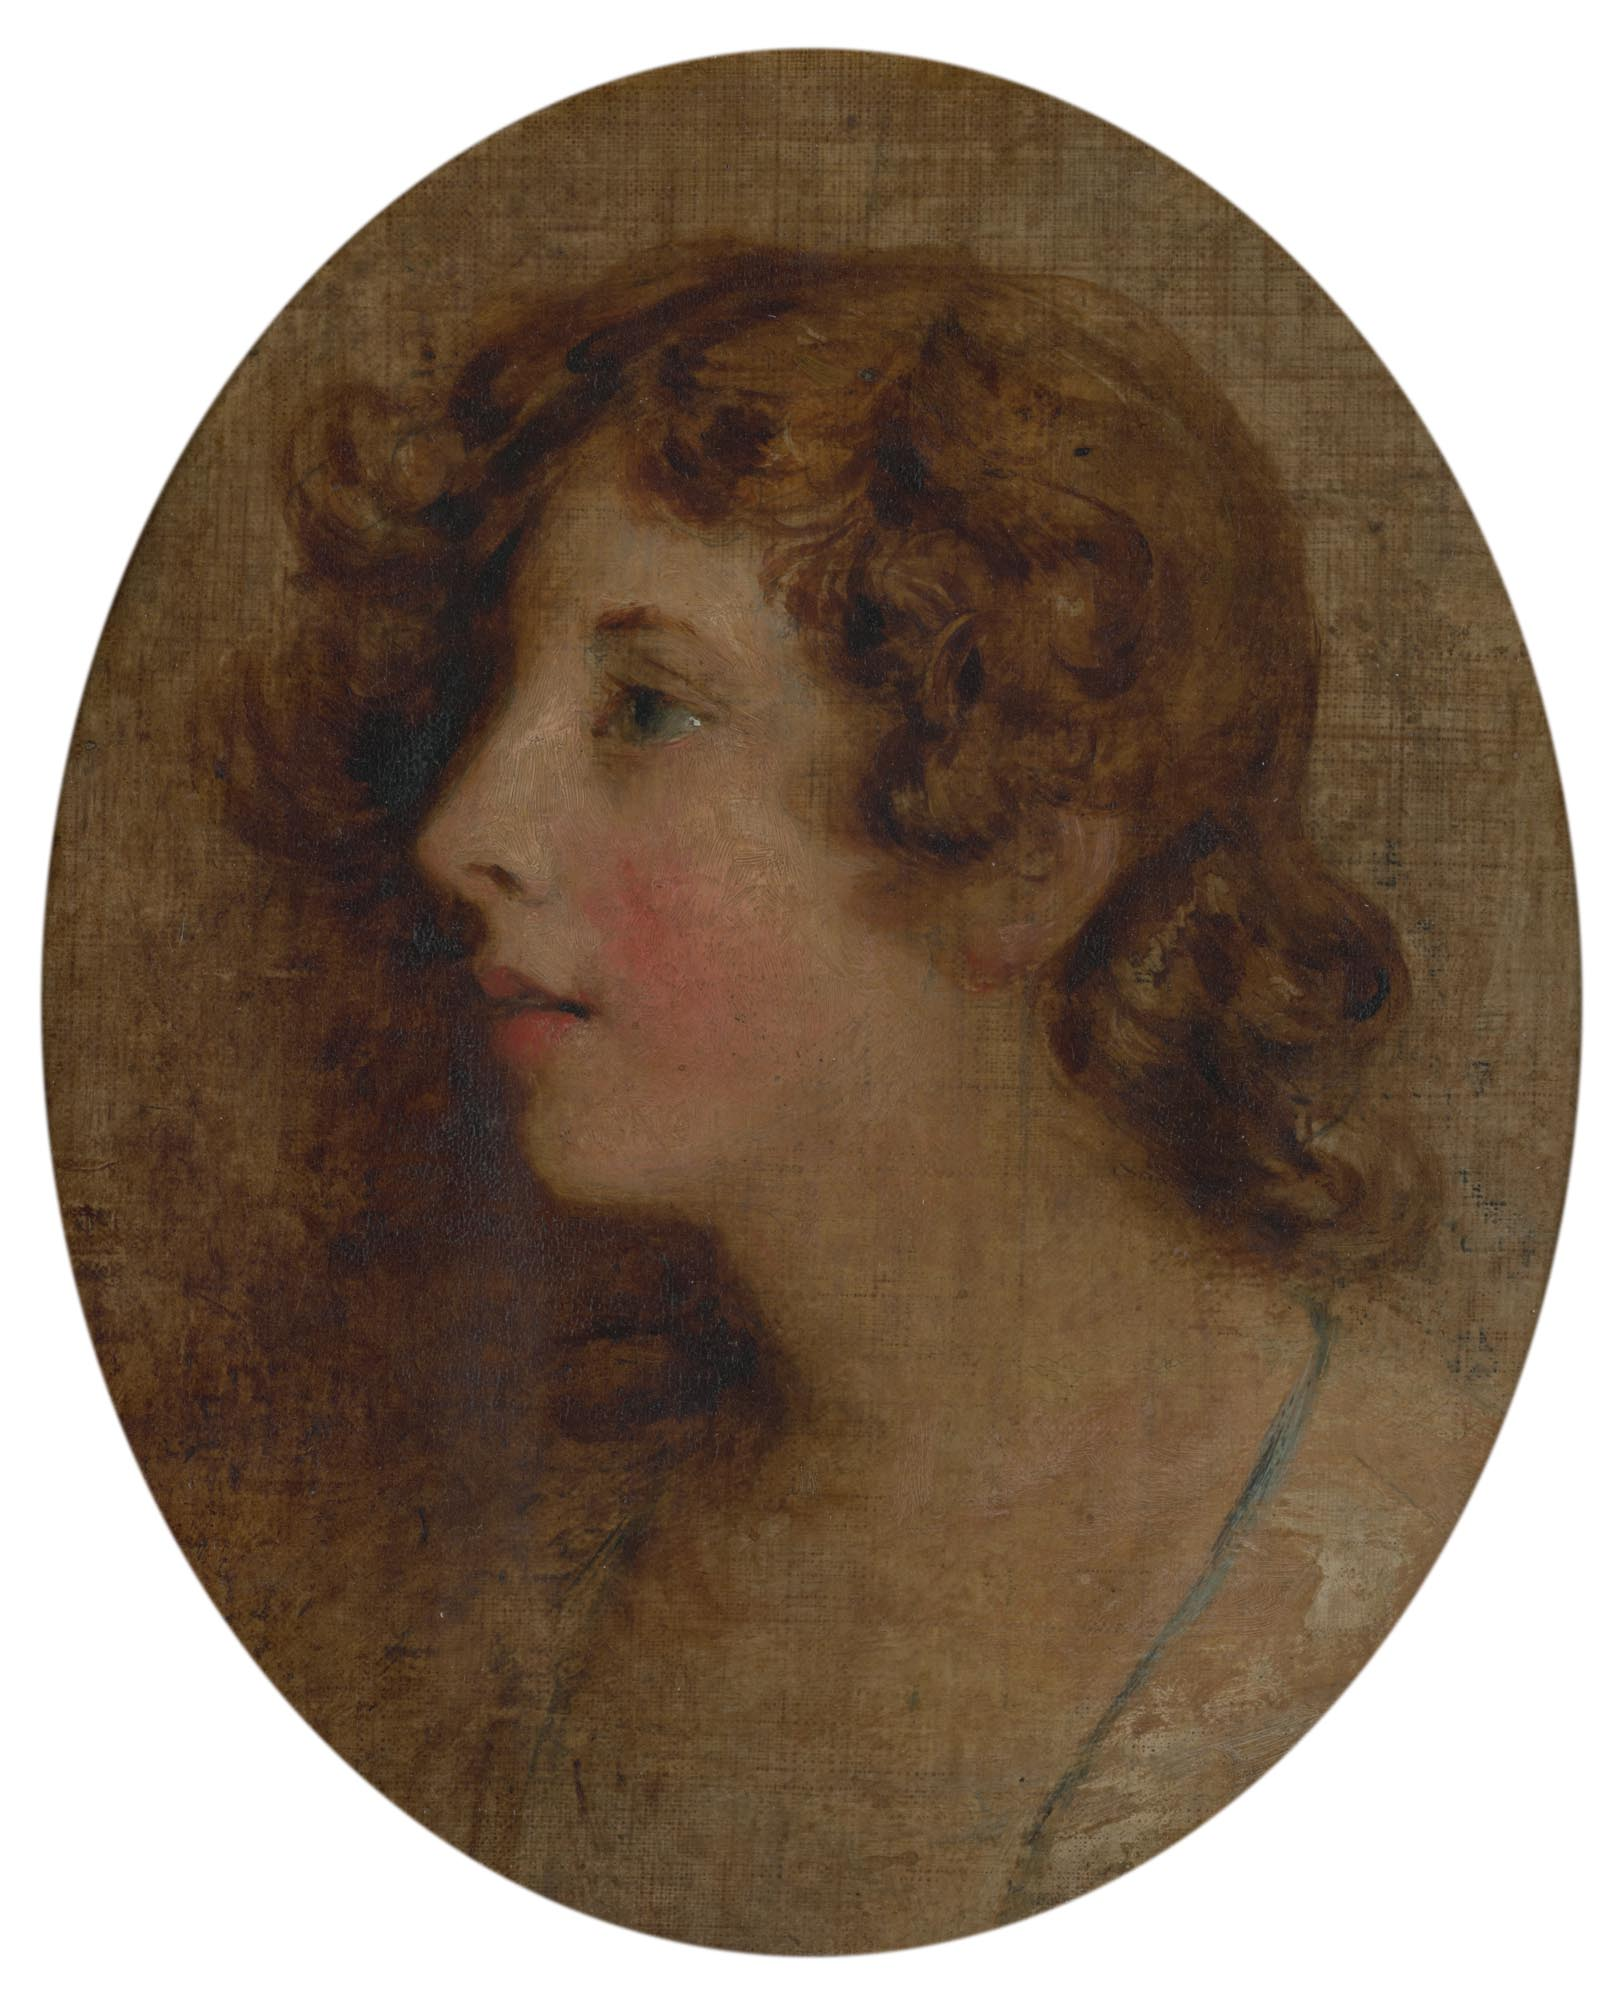 Unknown young woman, 18th century, oil on linen 28 x 22.7cm. Purchased from Sir Bruce Ingram, 1963. © Government Art Collection (1443)